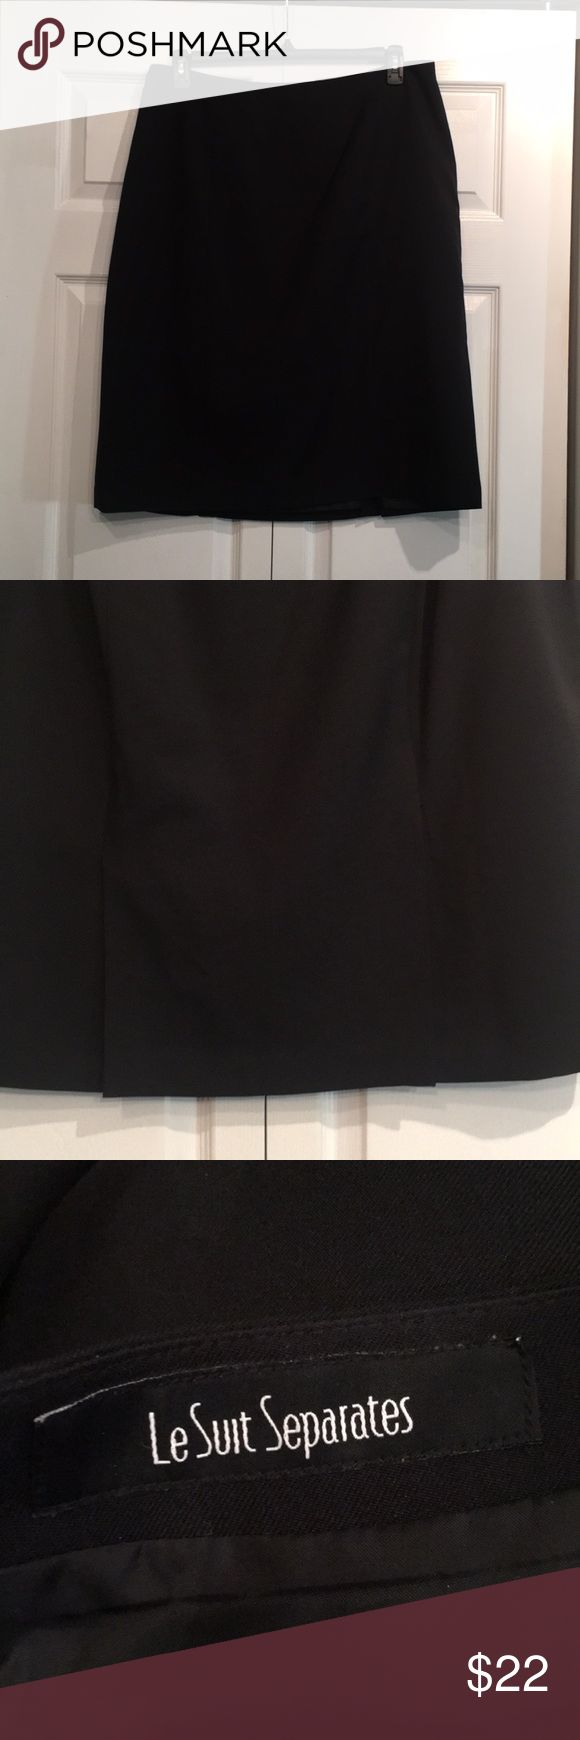 ✨ EUC LE SUIT SEPARATES PENCIL SKIRT BLACK ✨ Le Suit Separates EUC skirt. Two back slits, flat top. 16W. Make an offer and feel free to ask me questions. Measurements given upon request. Le Suit Skirts Pencil